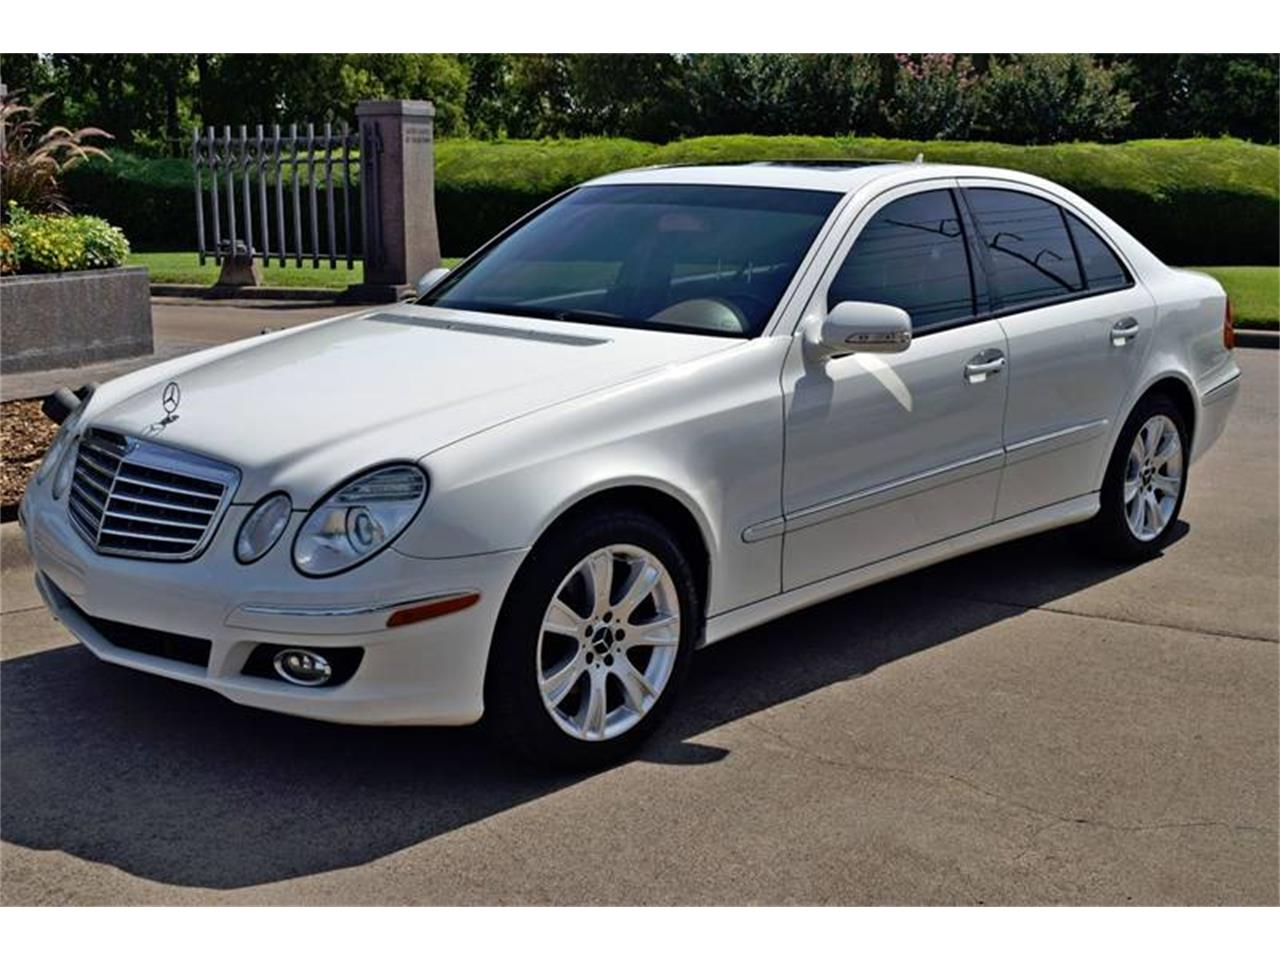 2009 Mercedes-Benz E-Class for sale in Fort Worth, TX – photo 3